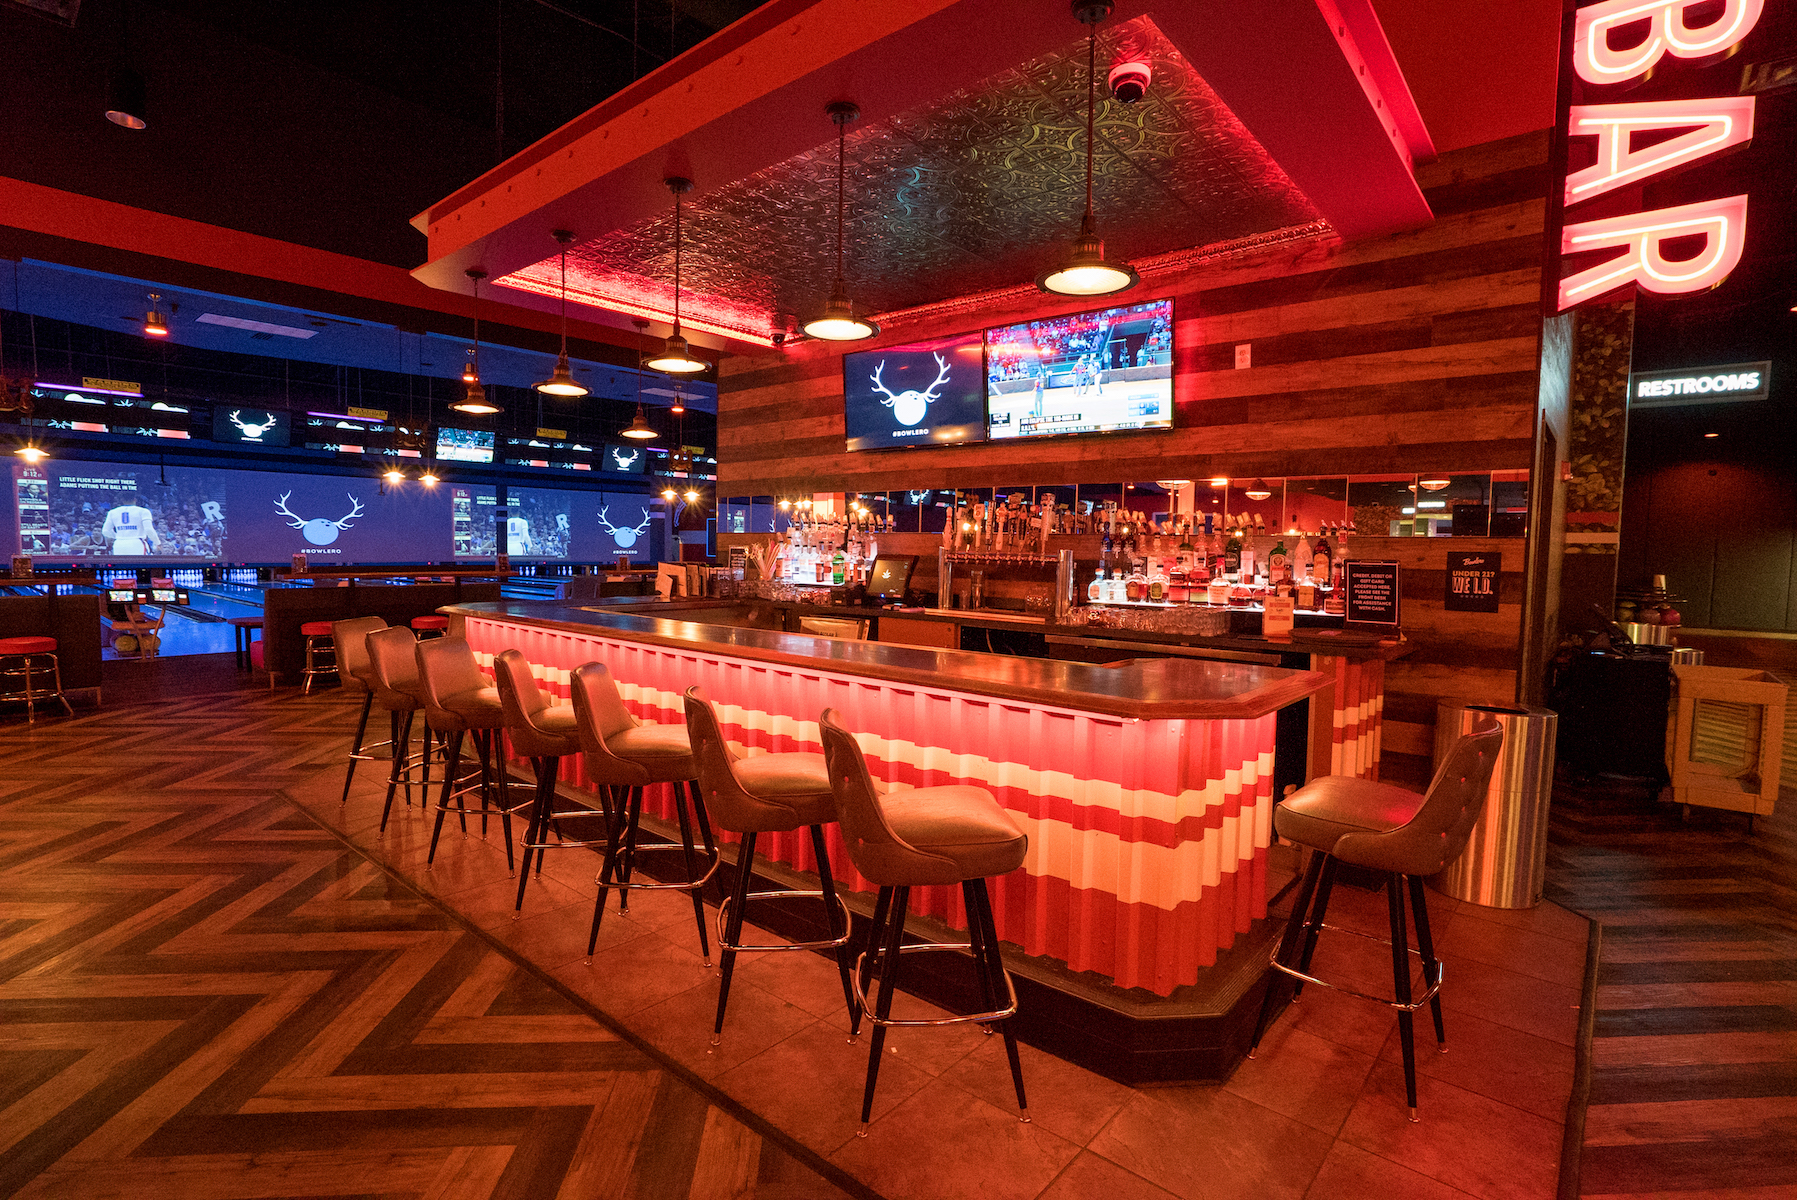 The Super-Bowl event space at Bowlmor Cupertino in Bay Area